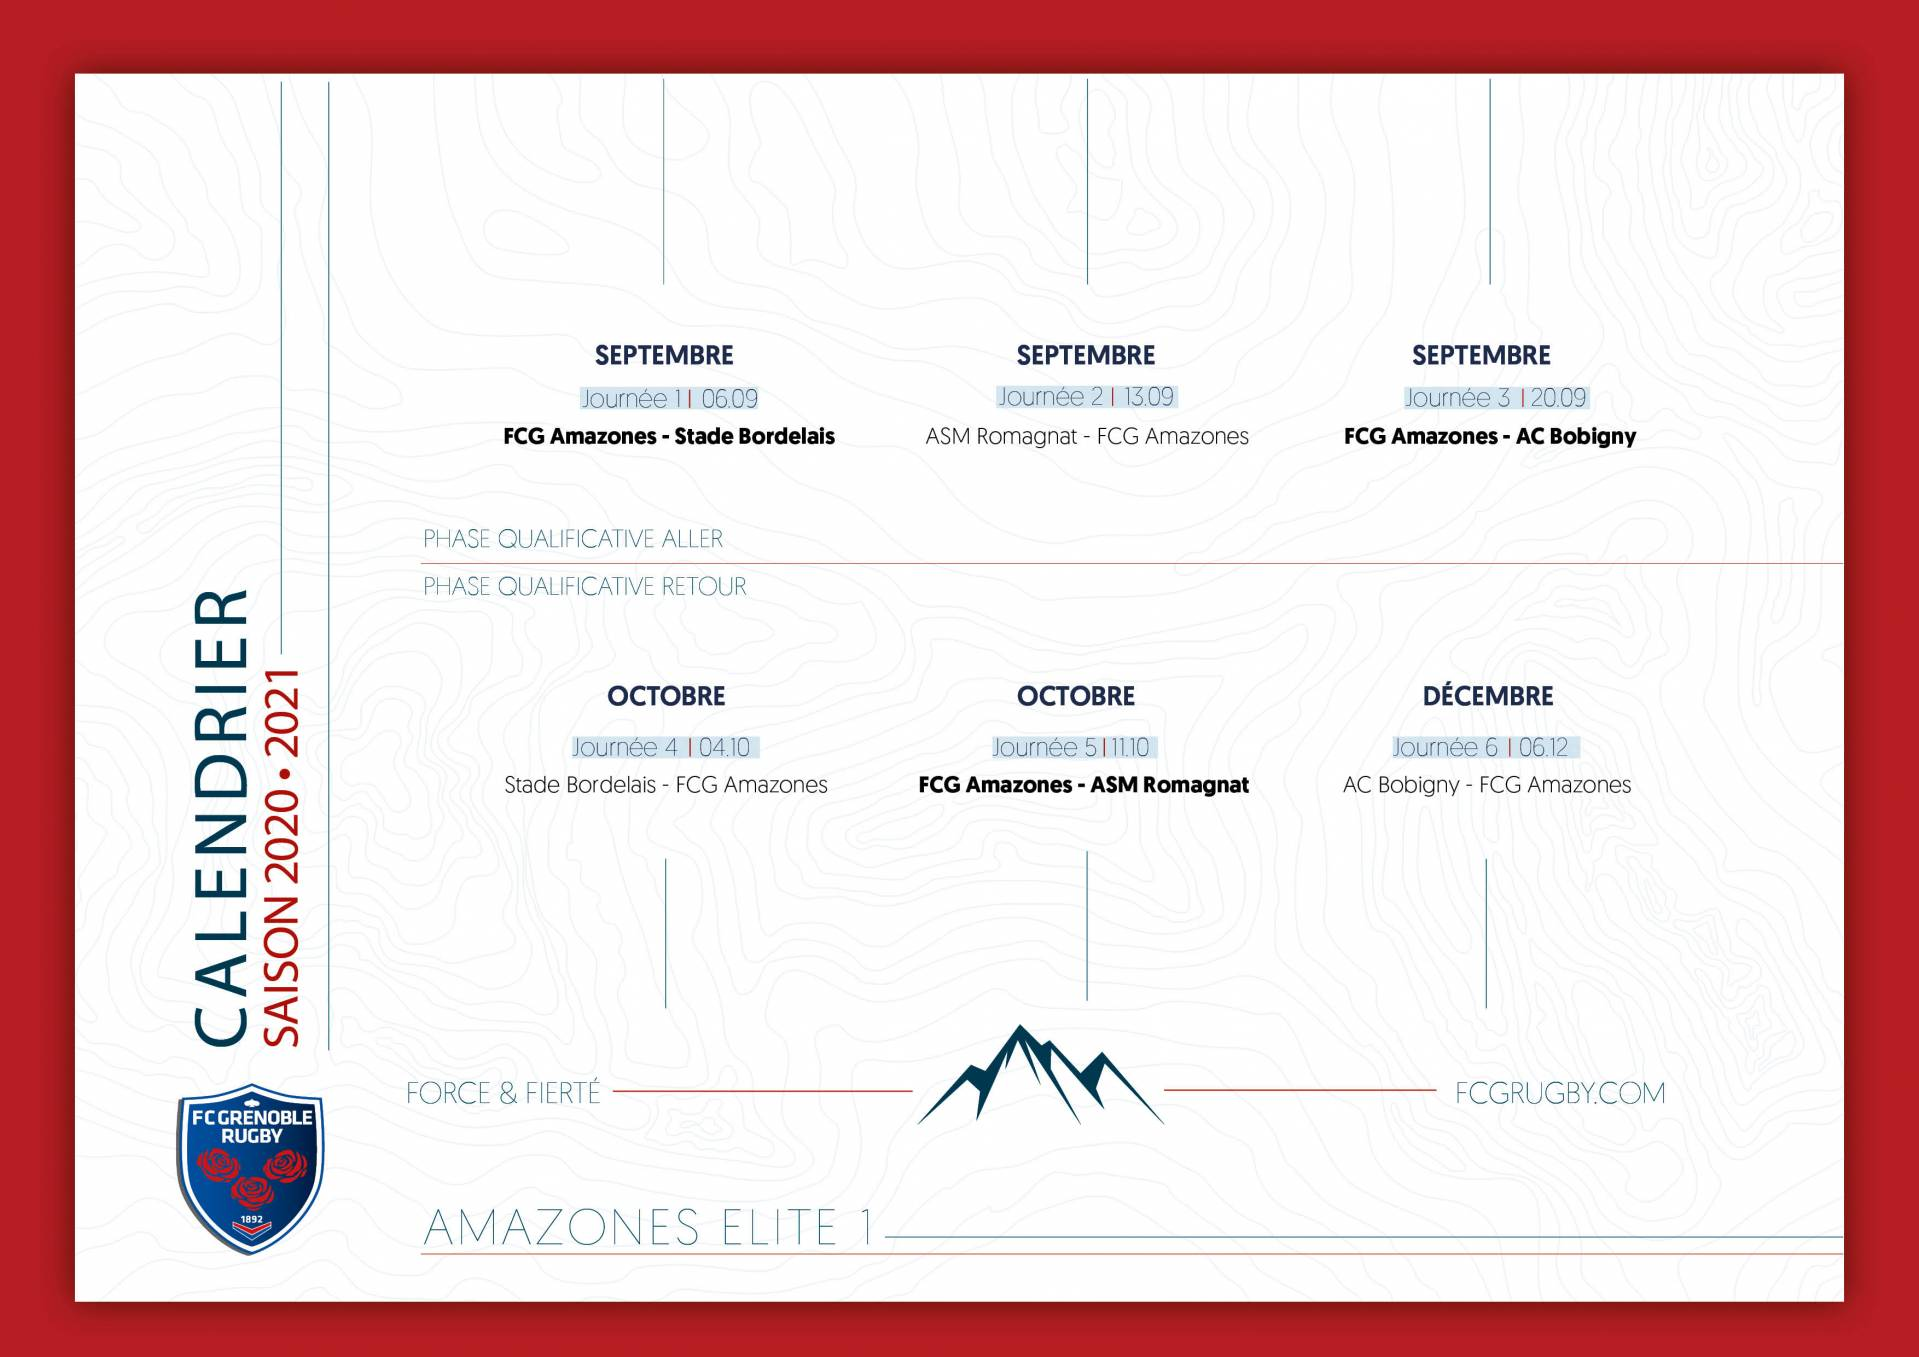 FCG   FC Grenoble Rugby   Le calendrier des Amazones 20/21